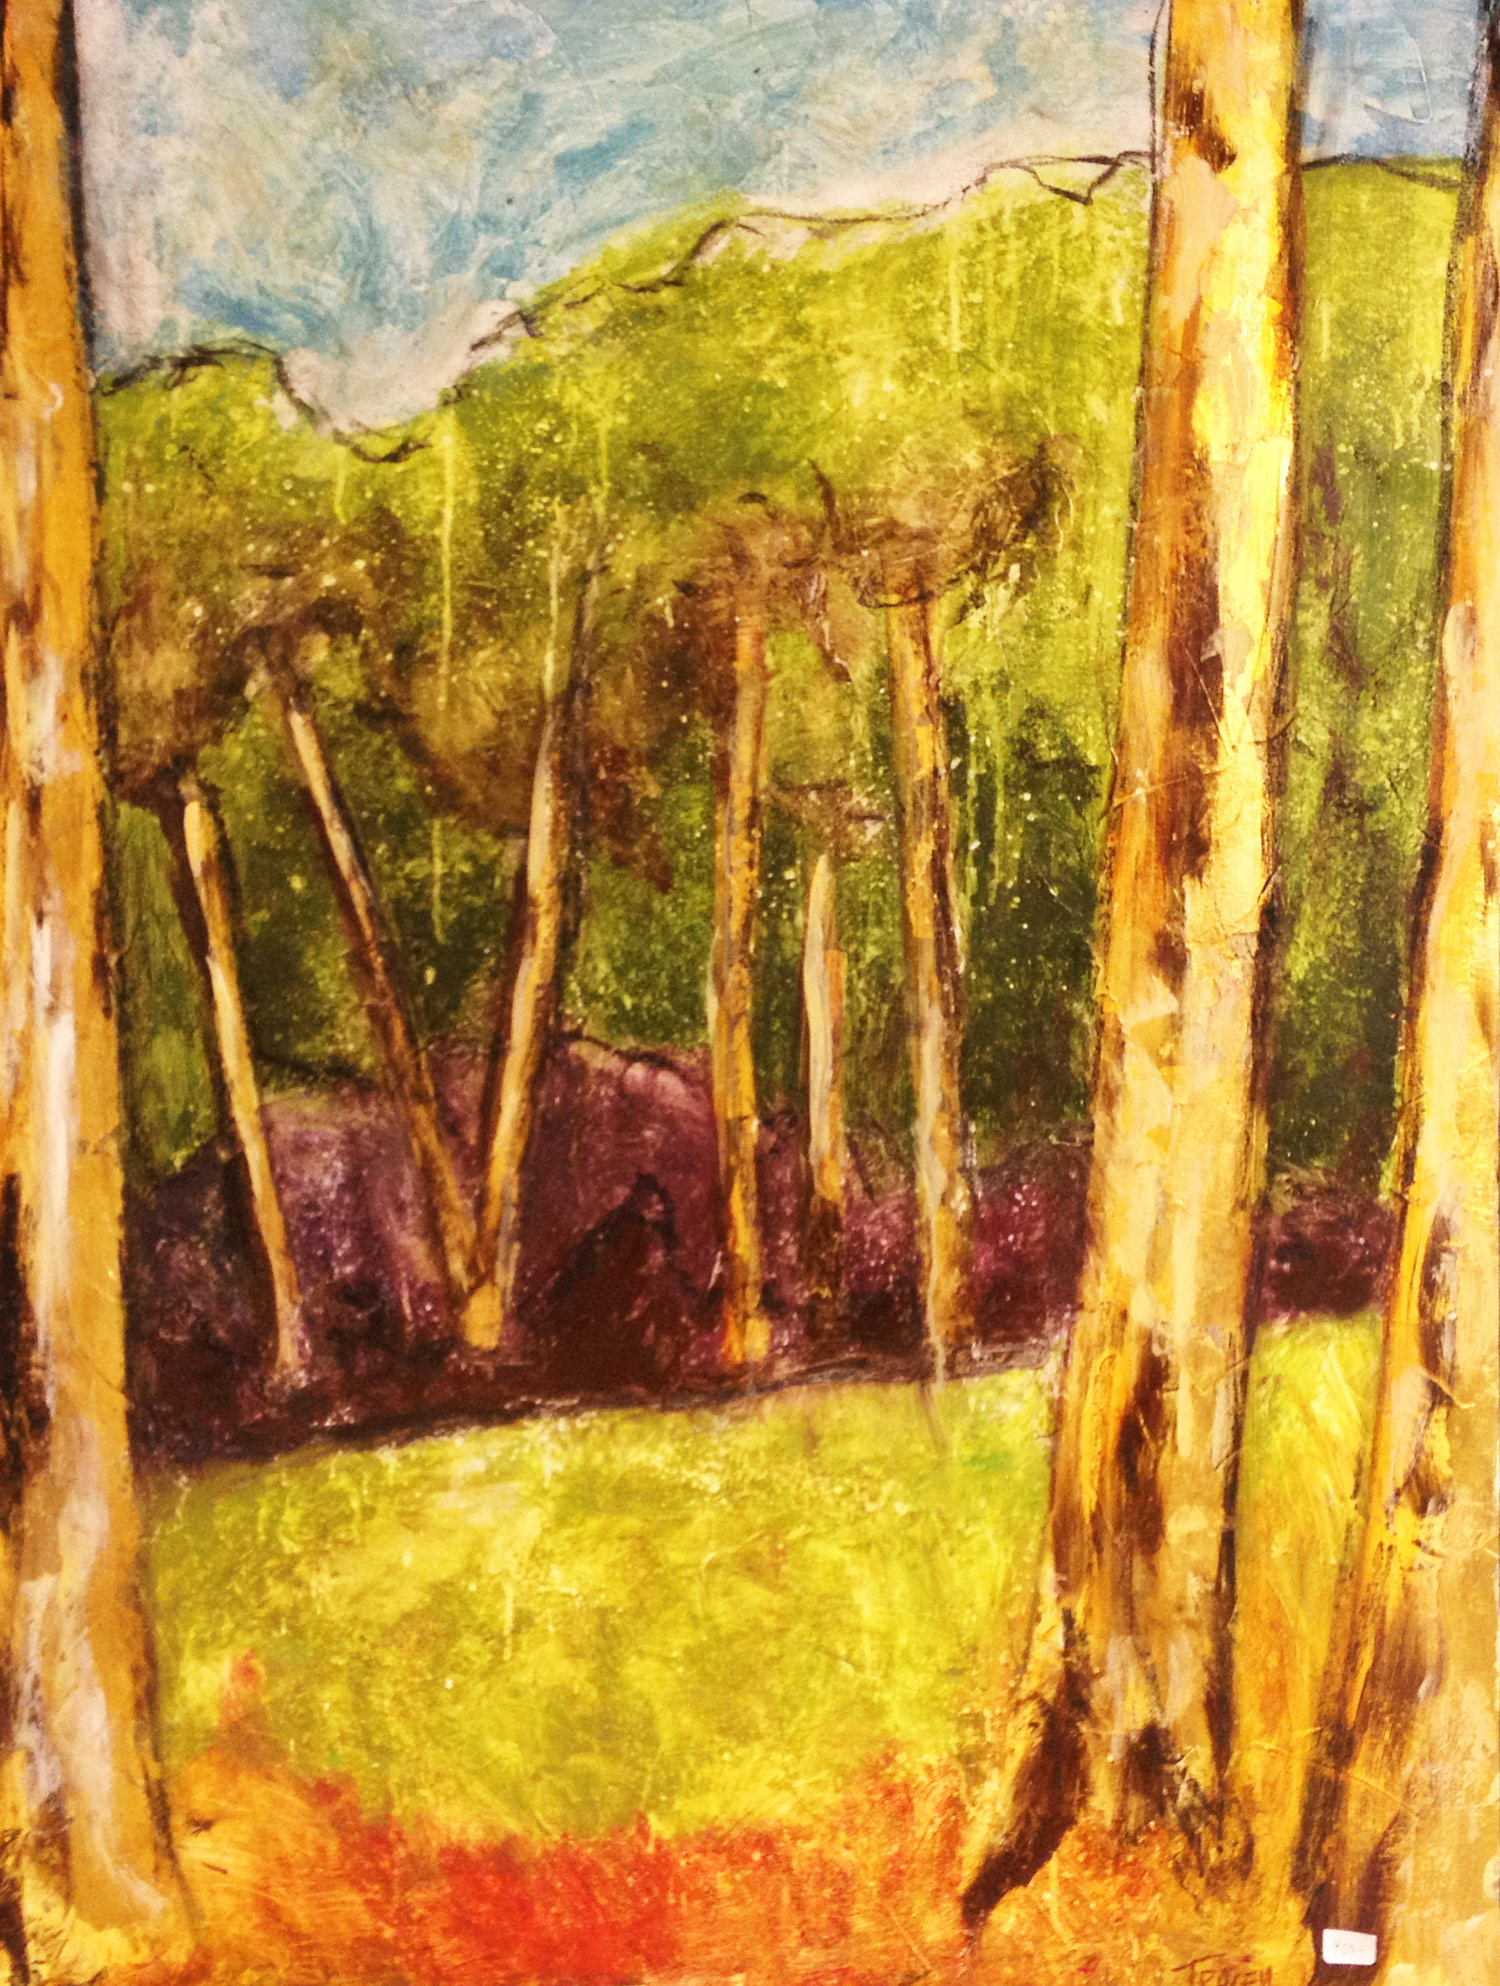 acrylic-abstract-landscape-by-tracey-marshall-IMG_9765.jpg